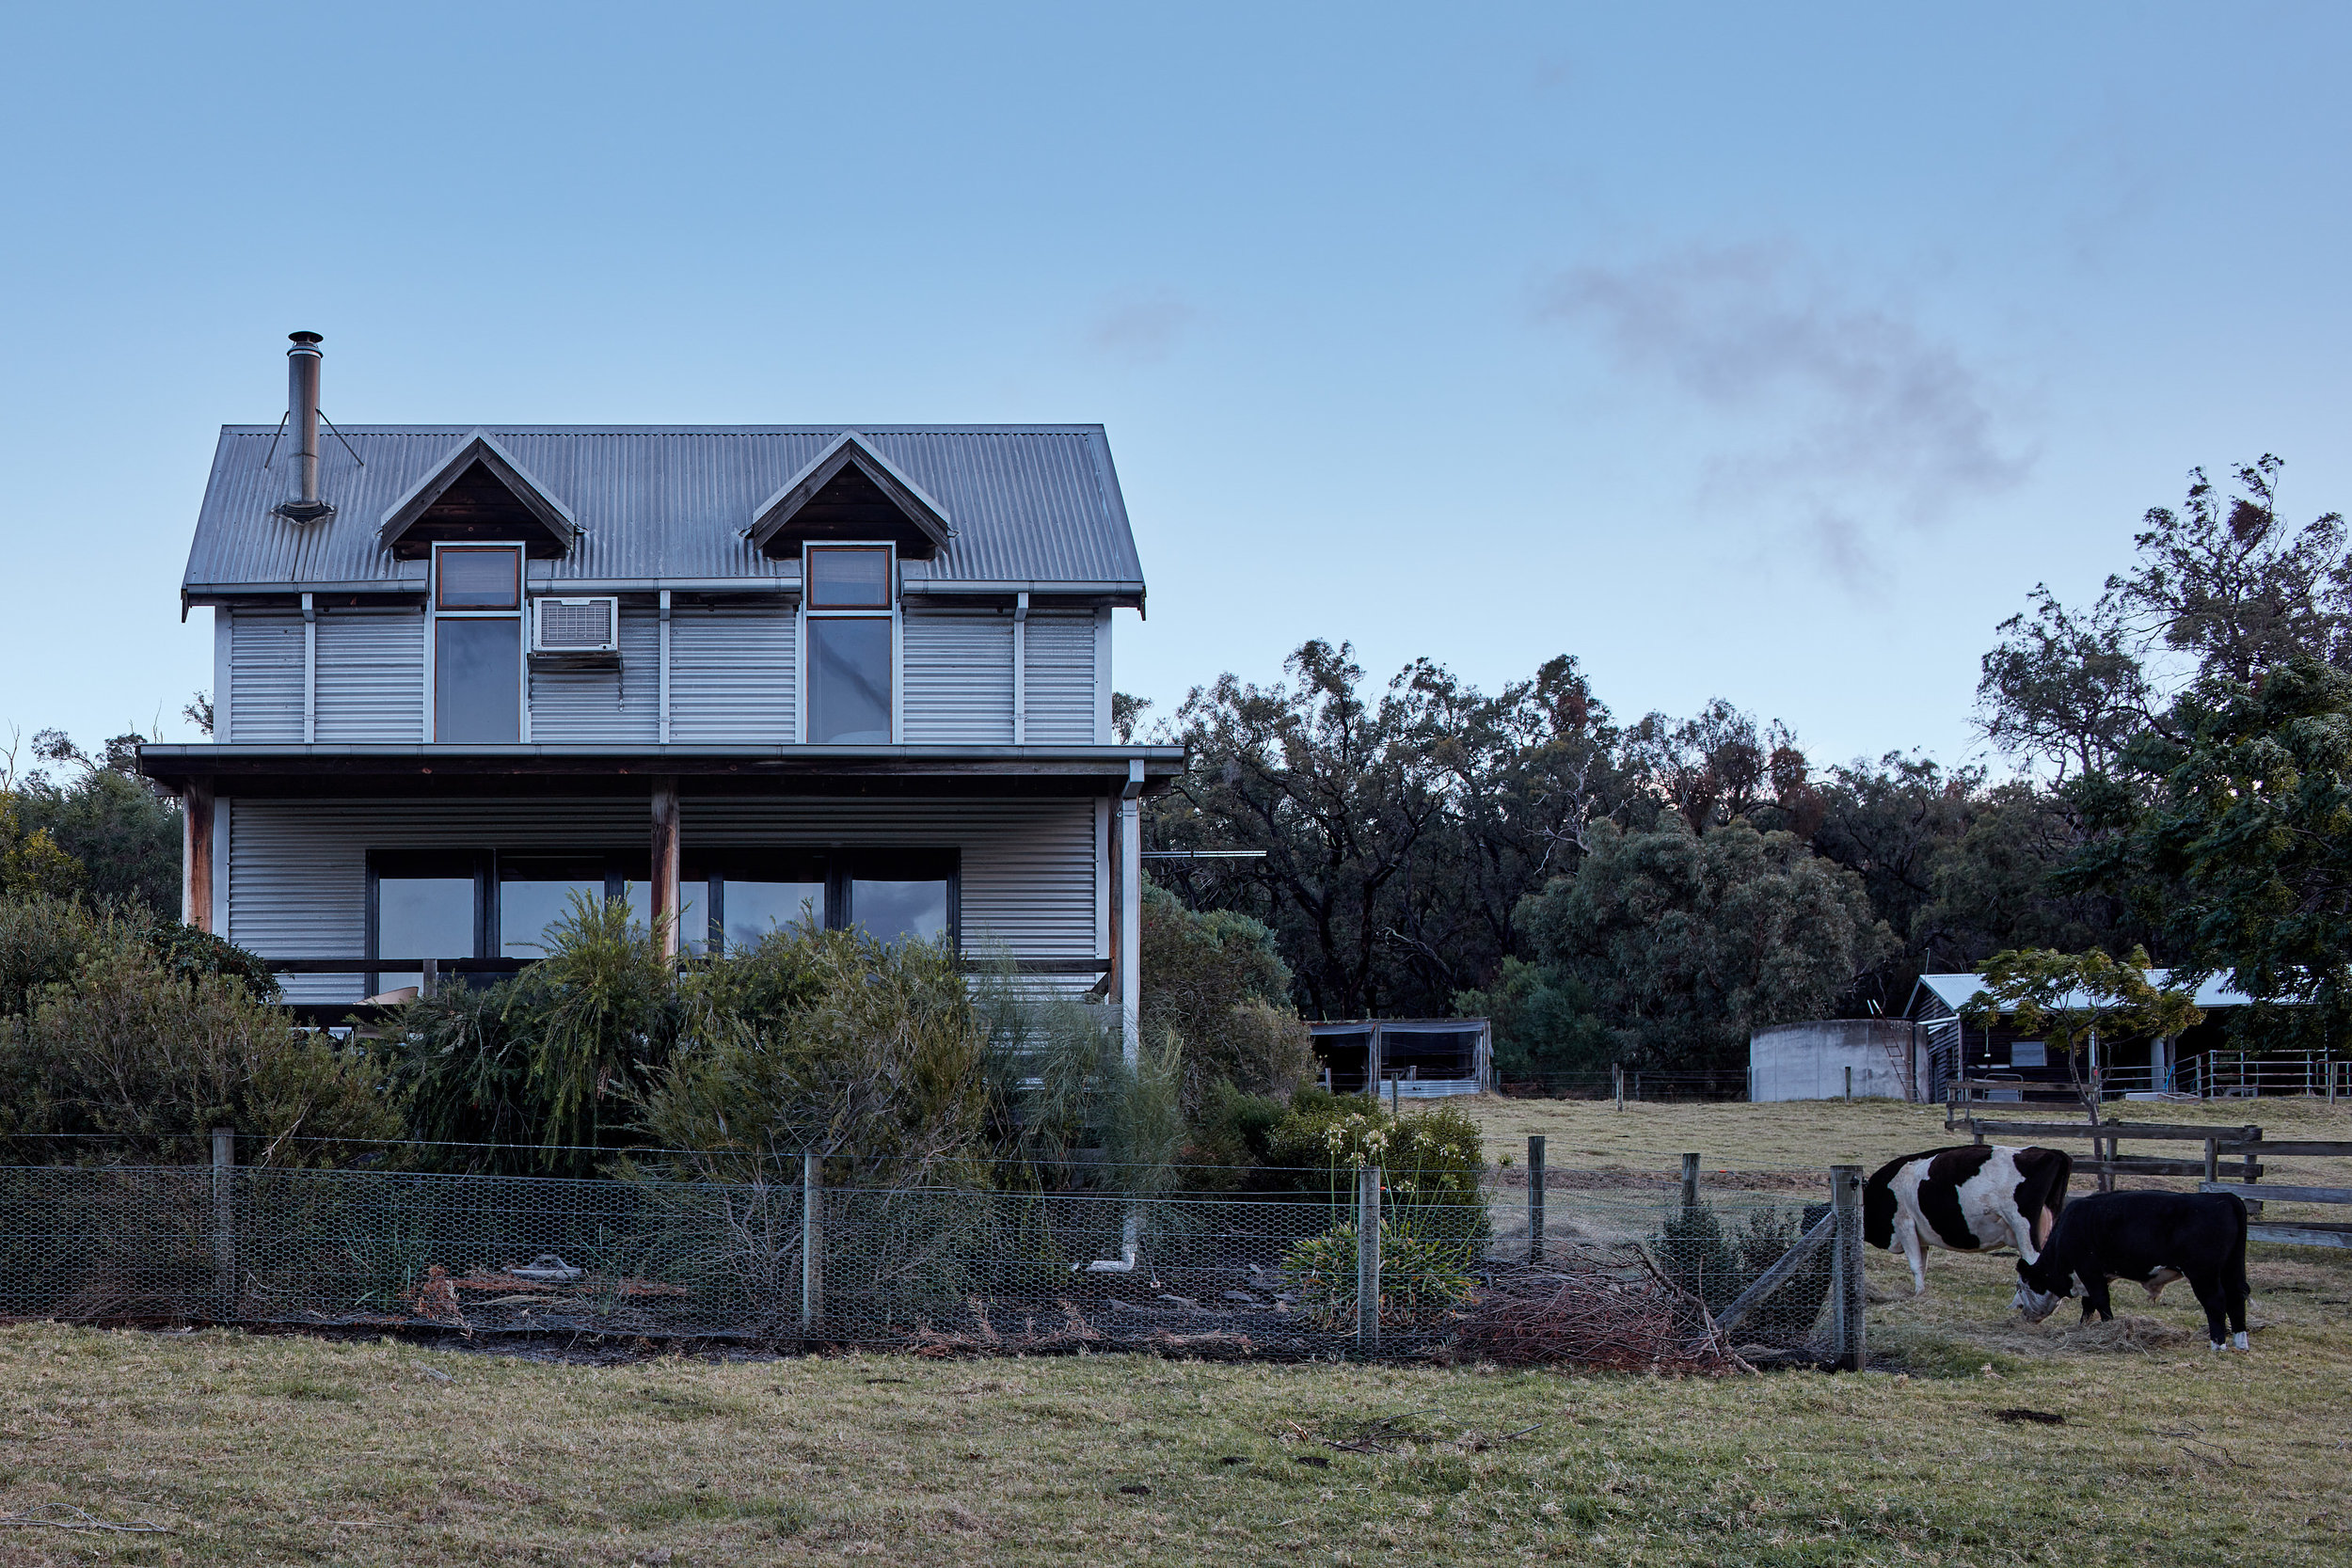 nathan-k-davis-residential-2018-architecture-architectural-photography-interior-exterior-macks-creek-air-bnb-cottage-country-gippsland-4